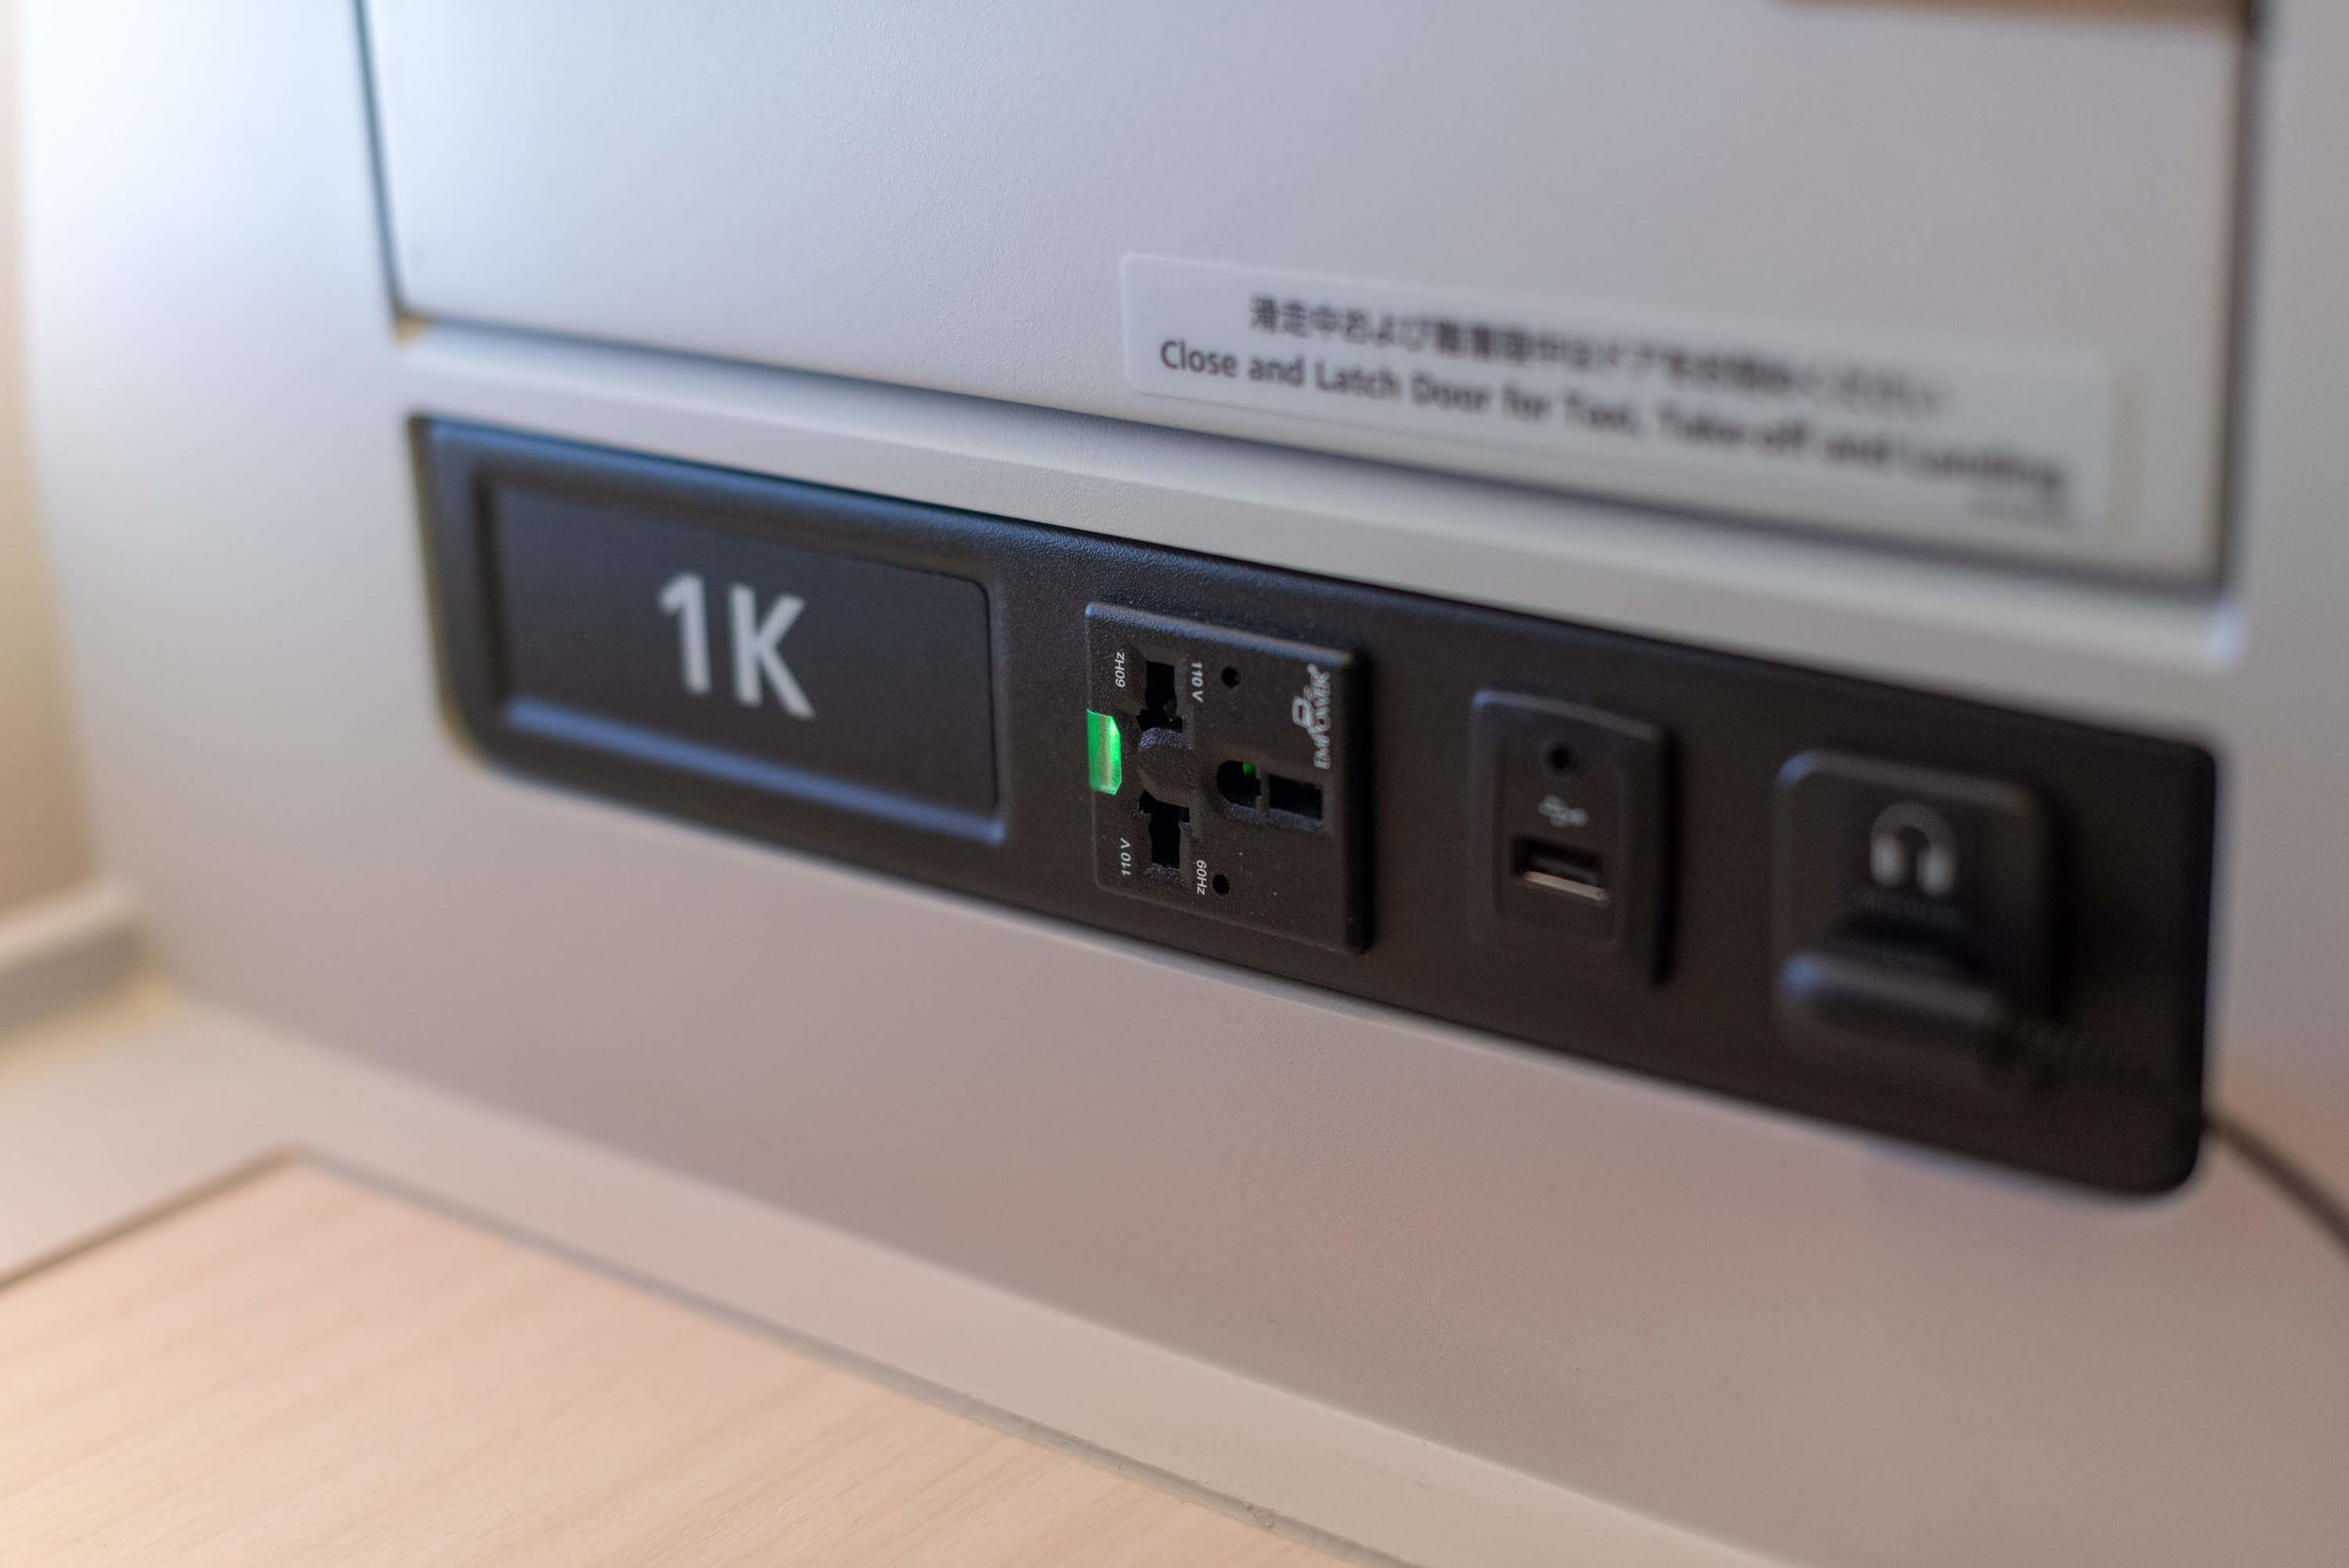 USB Charging Port and Universal Power Outlet Japan Airlines Business Class JL724 - KUL to NRT